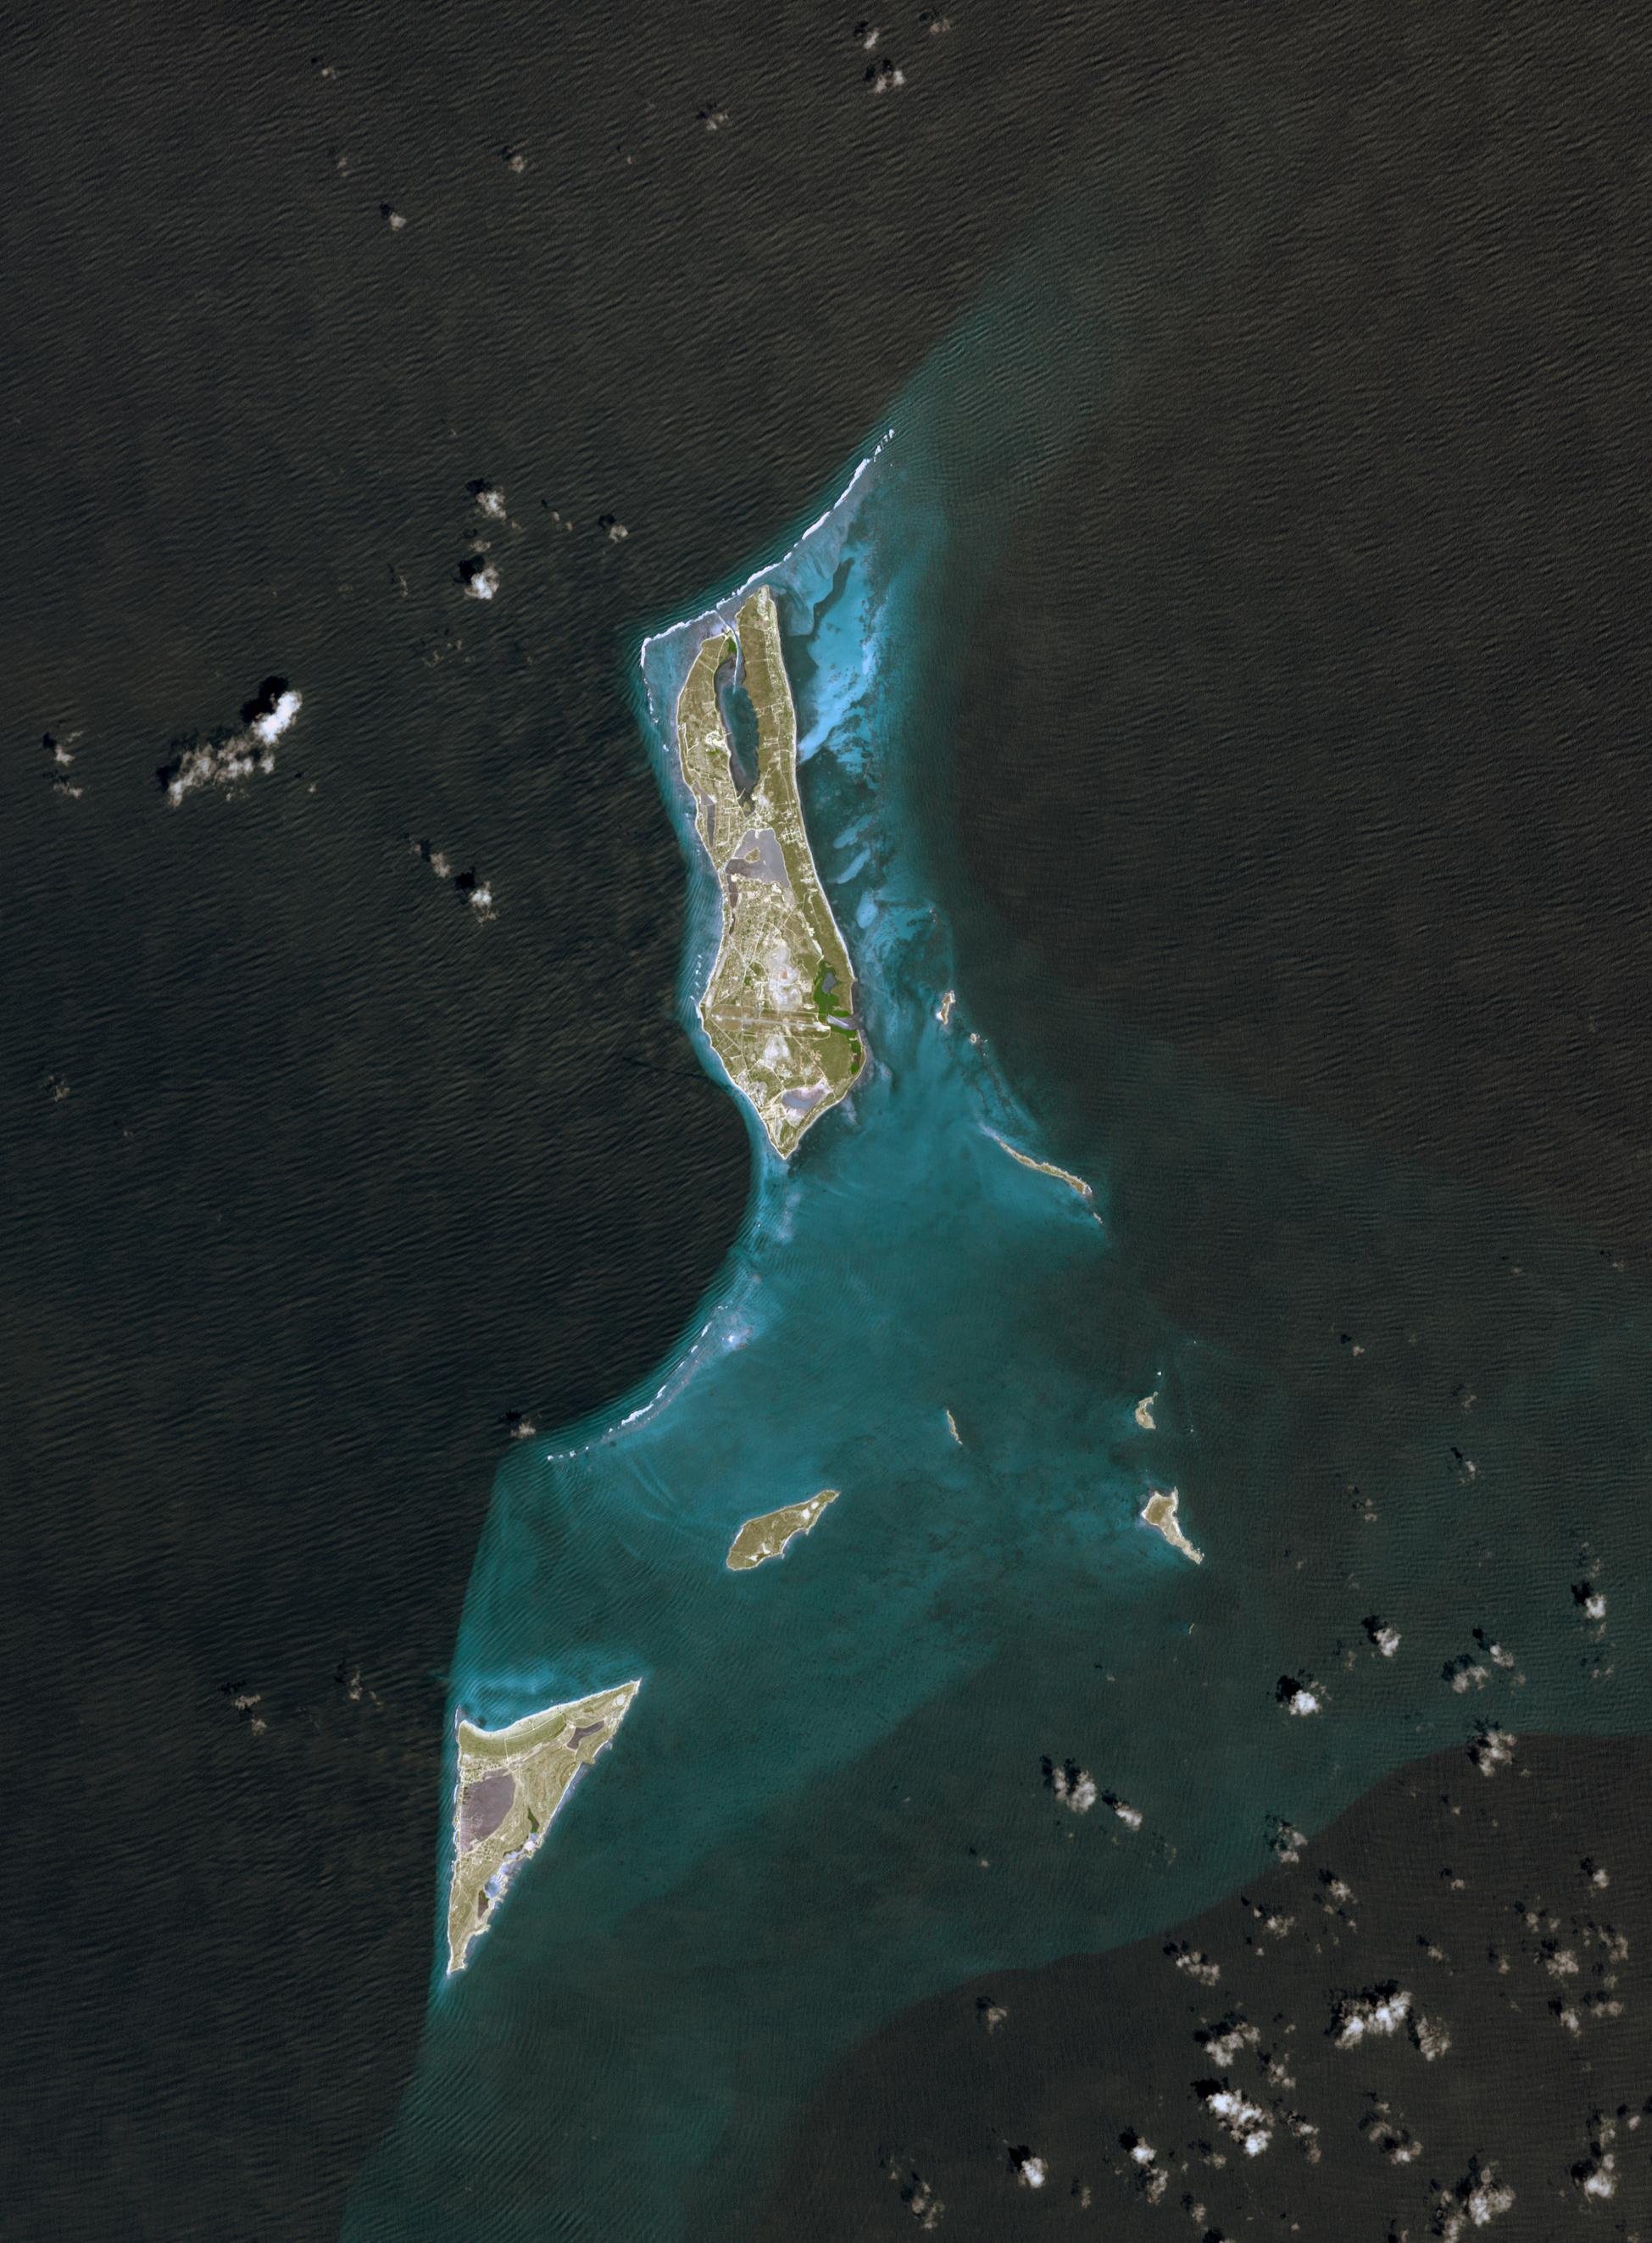 Grand Turk and Salt Cay Islands - related image preview